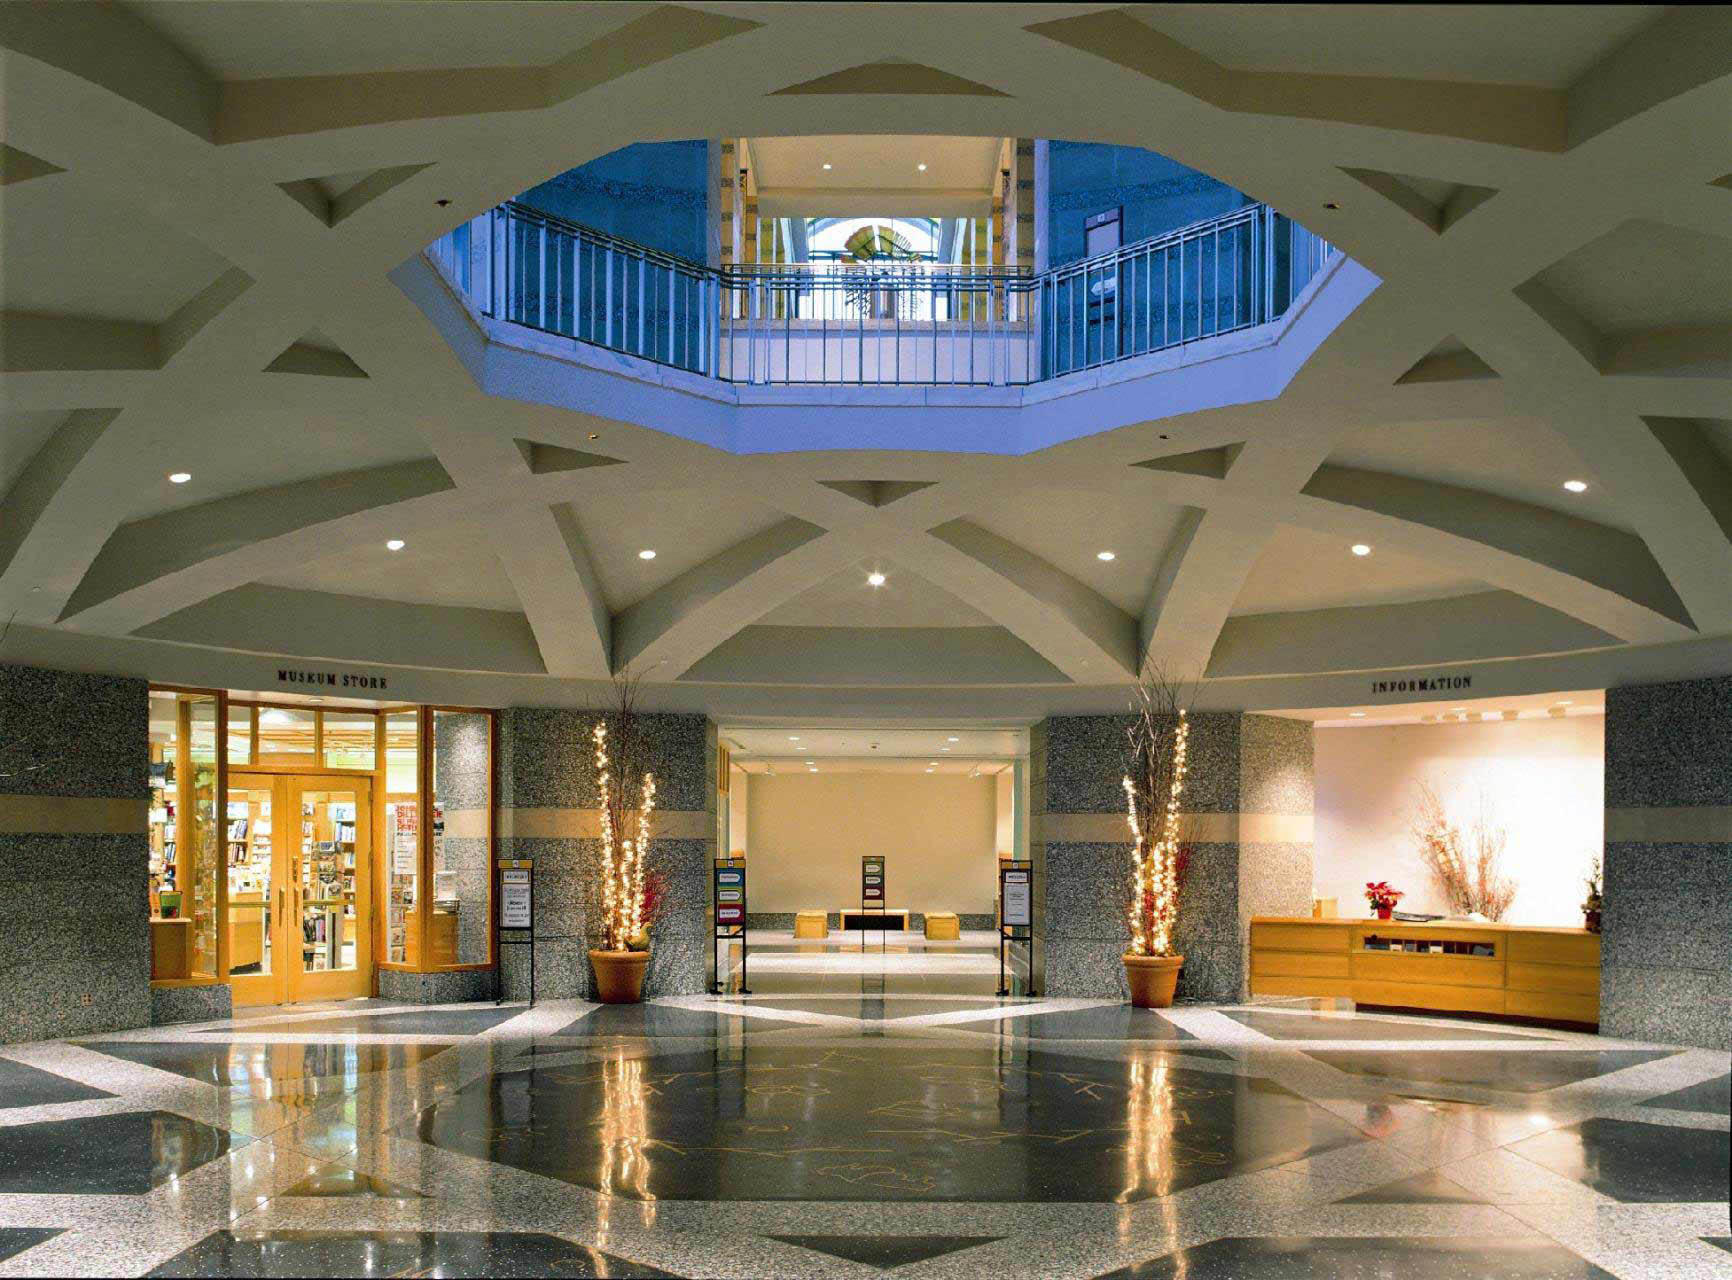 Minnesota History Center lobby